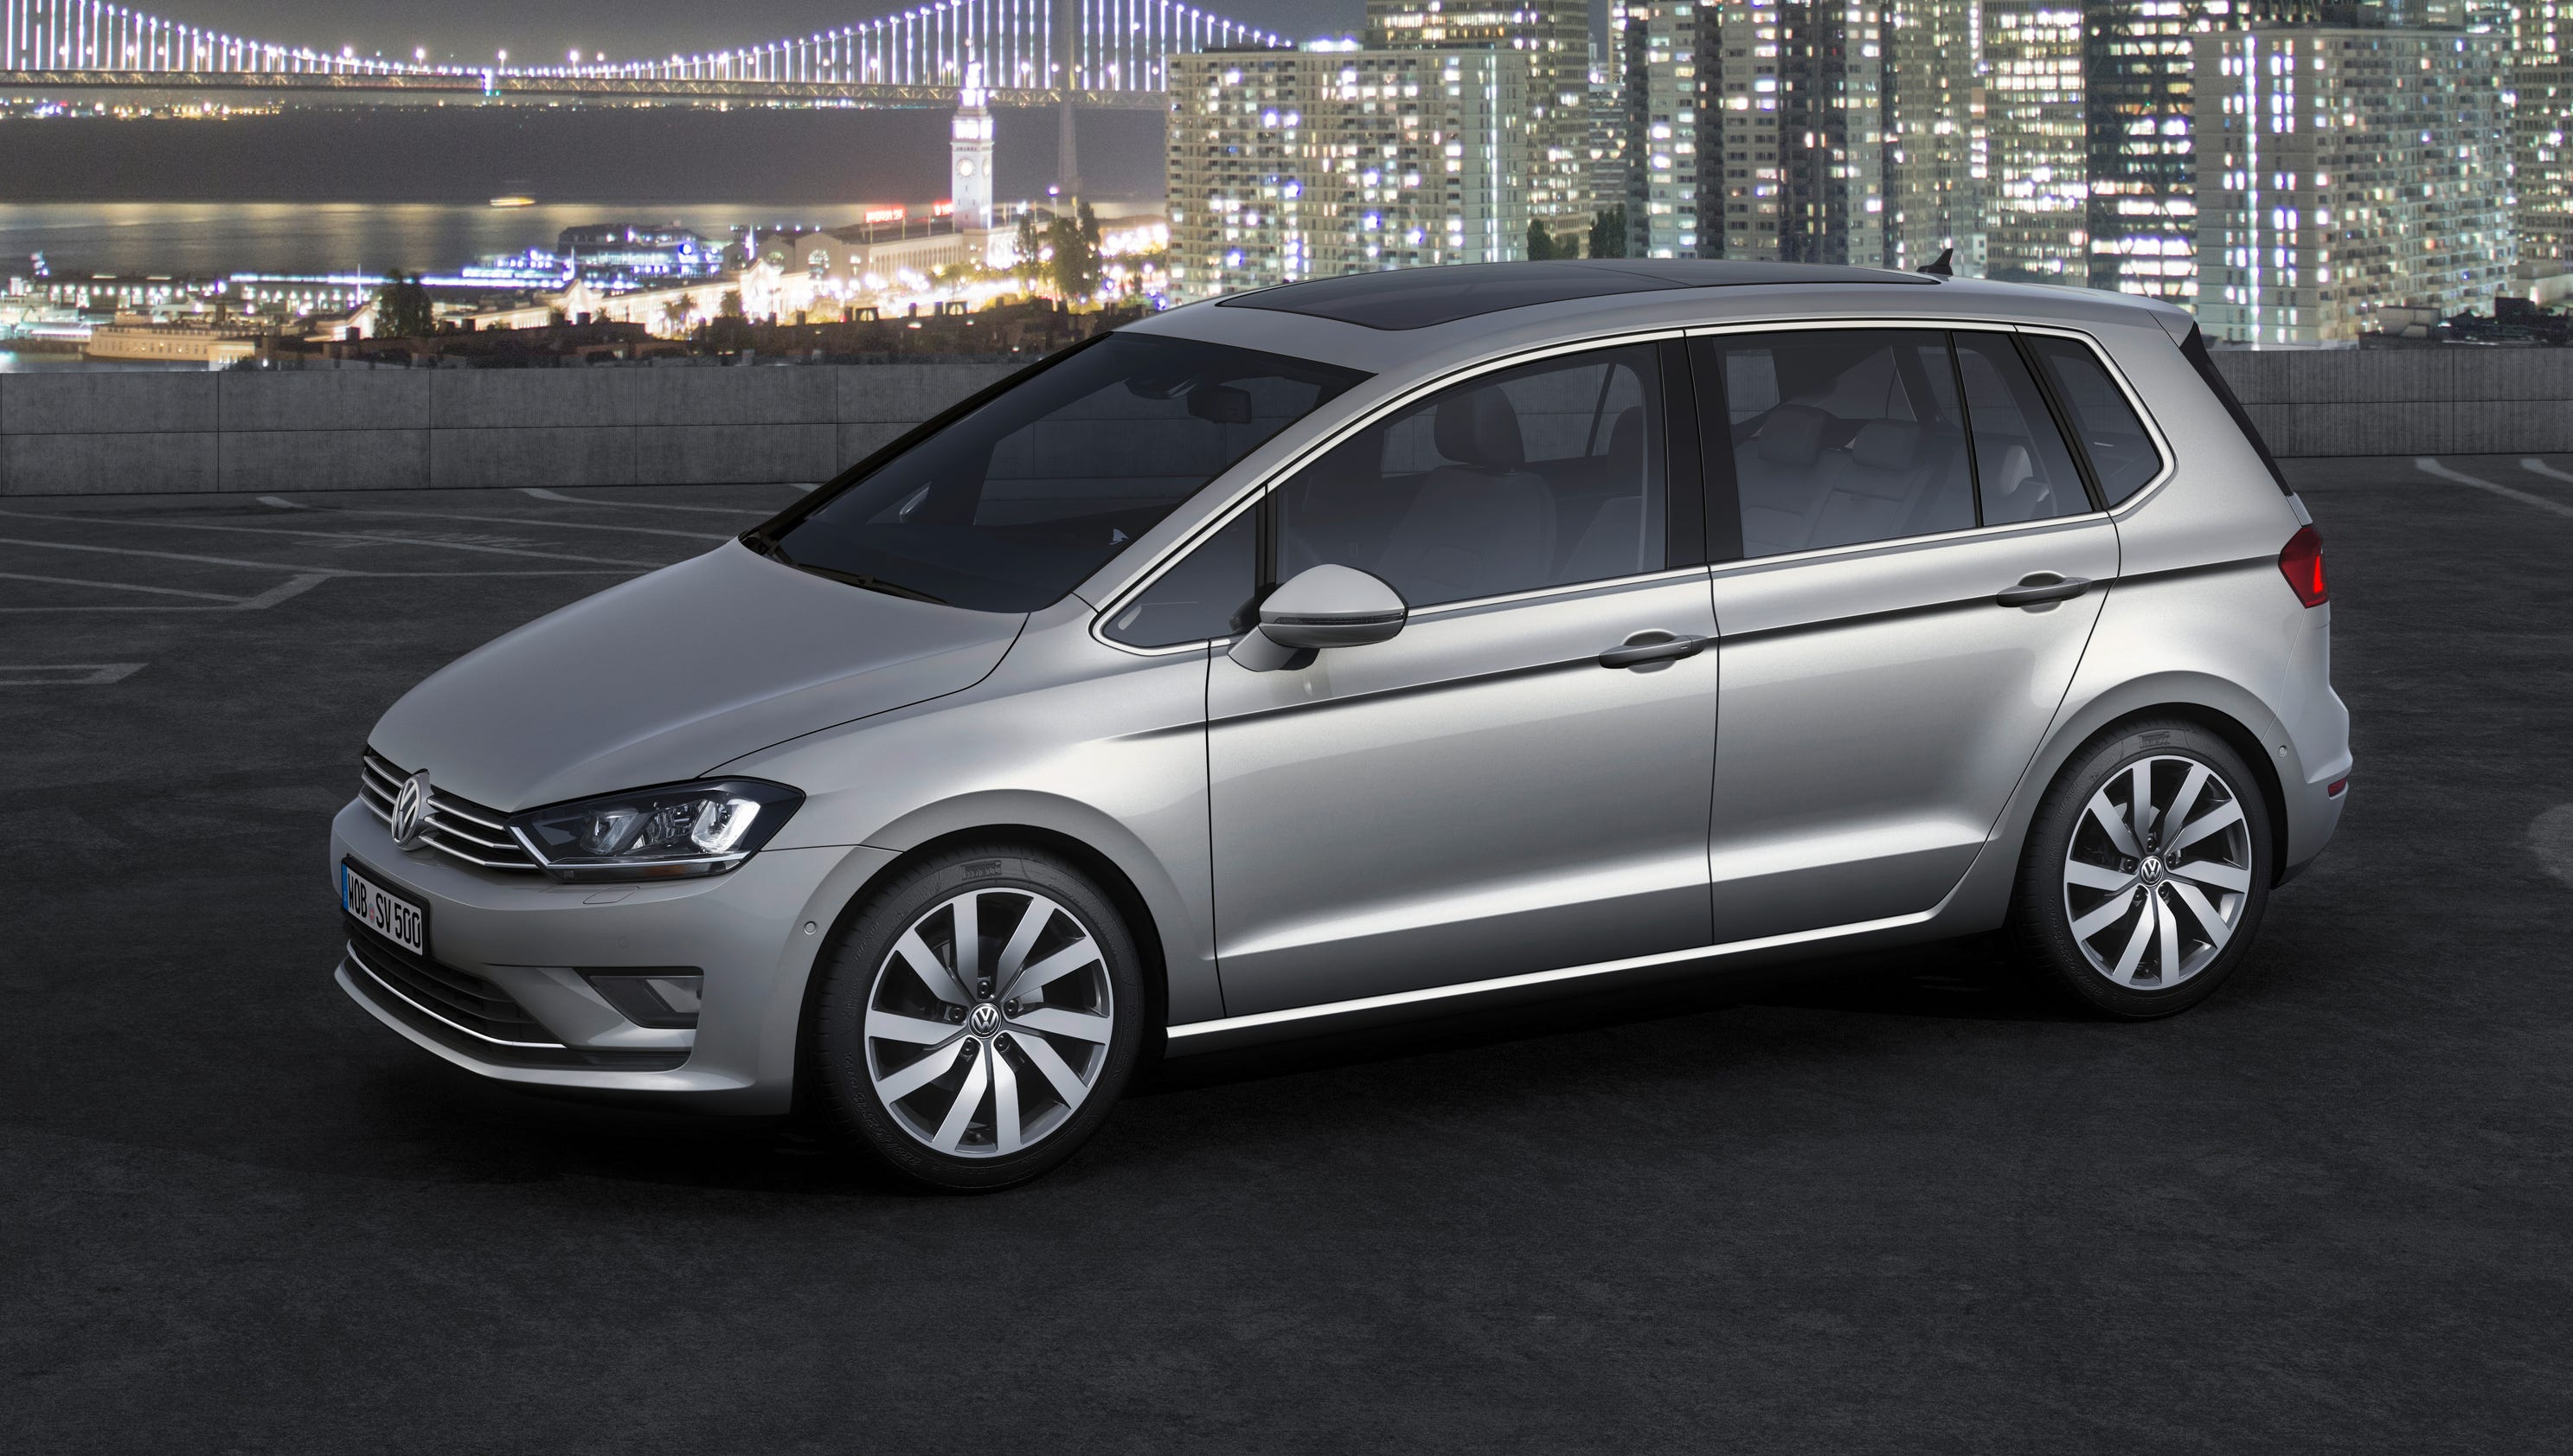 Used volkswagen citi alberton mitula cars -  Cars In Your City Vw Shows Slick Tall Version Of Golf At Frankfurt Show Volkswagen Citi New Alberton Mitula